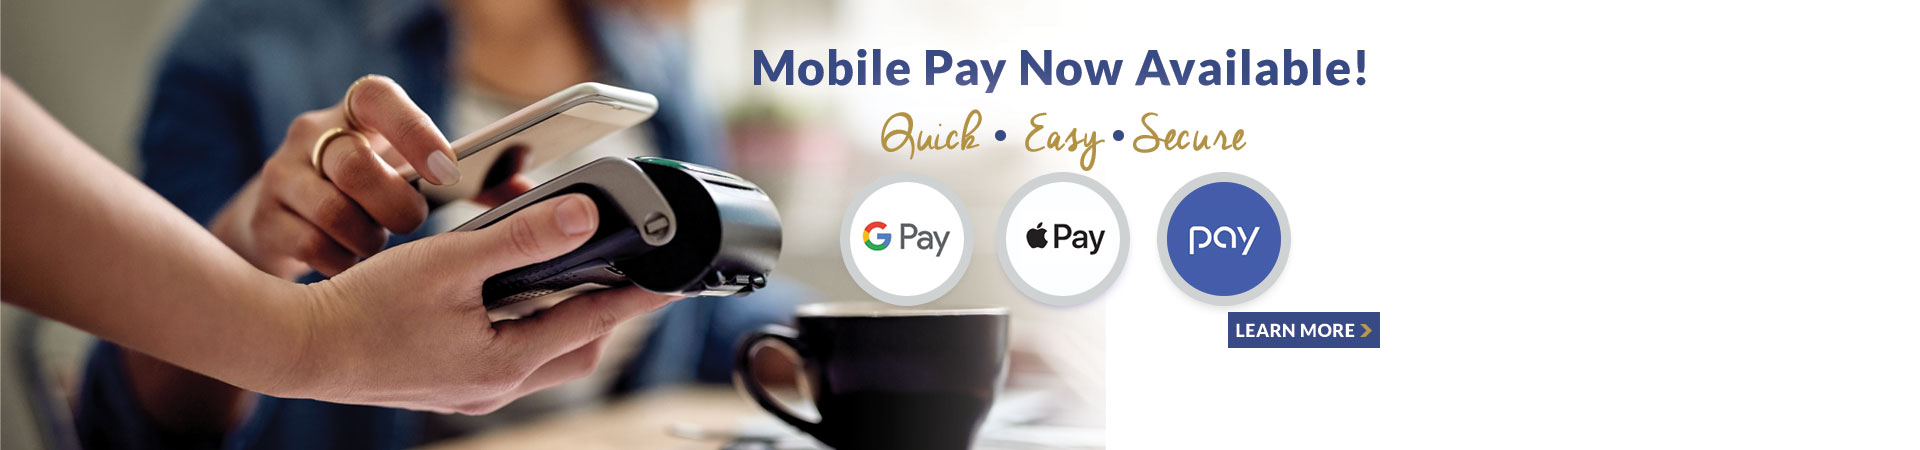 Mobile Pay is now available